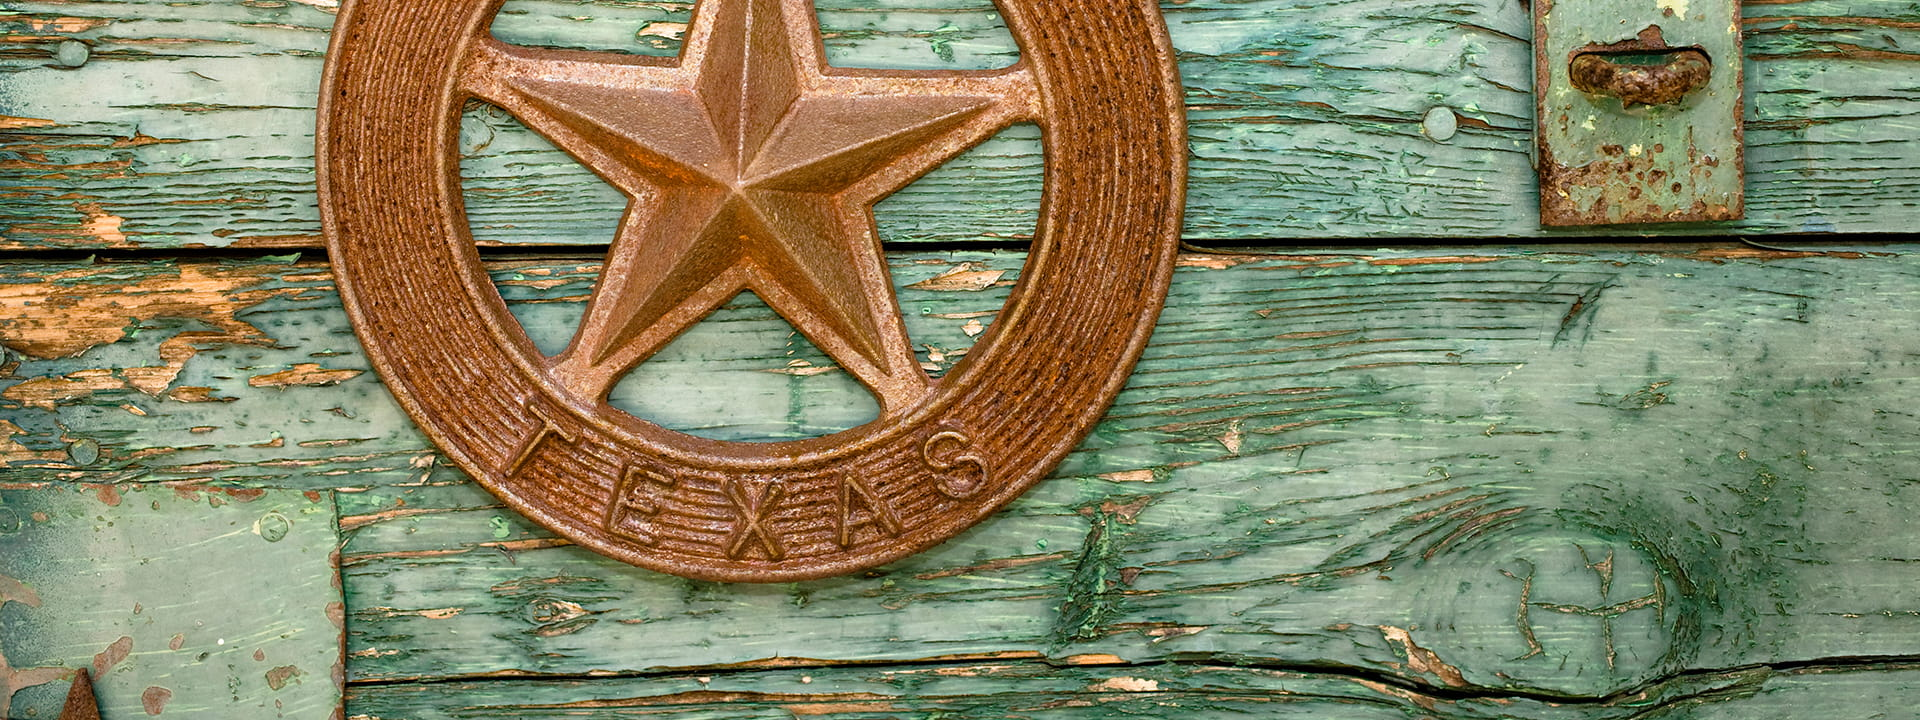 Texas badge on a wooden board.